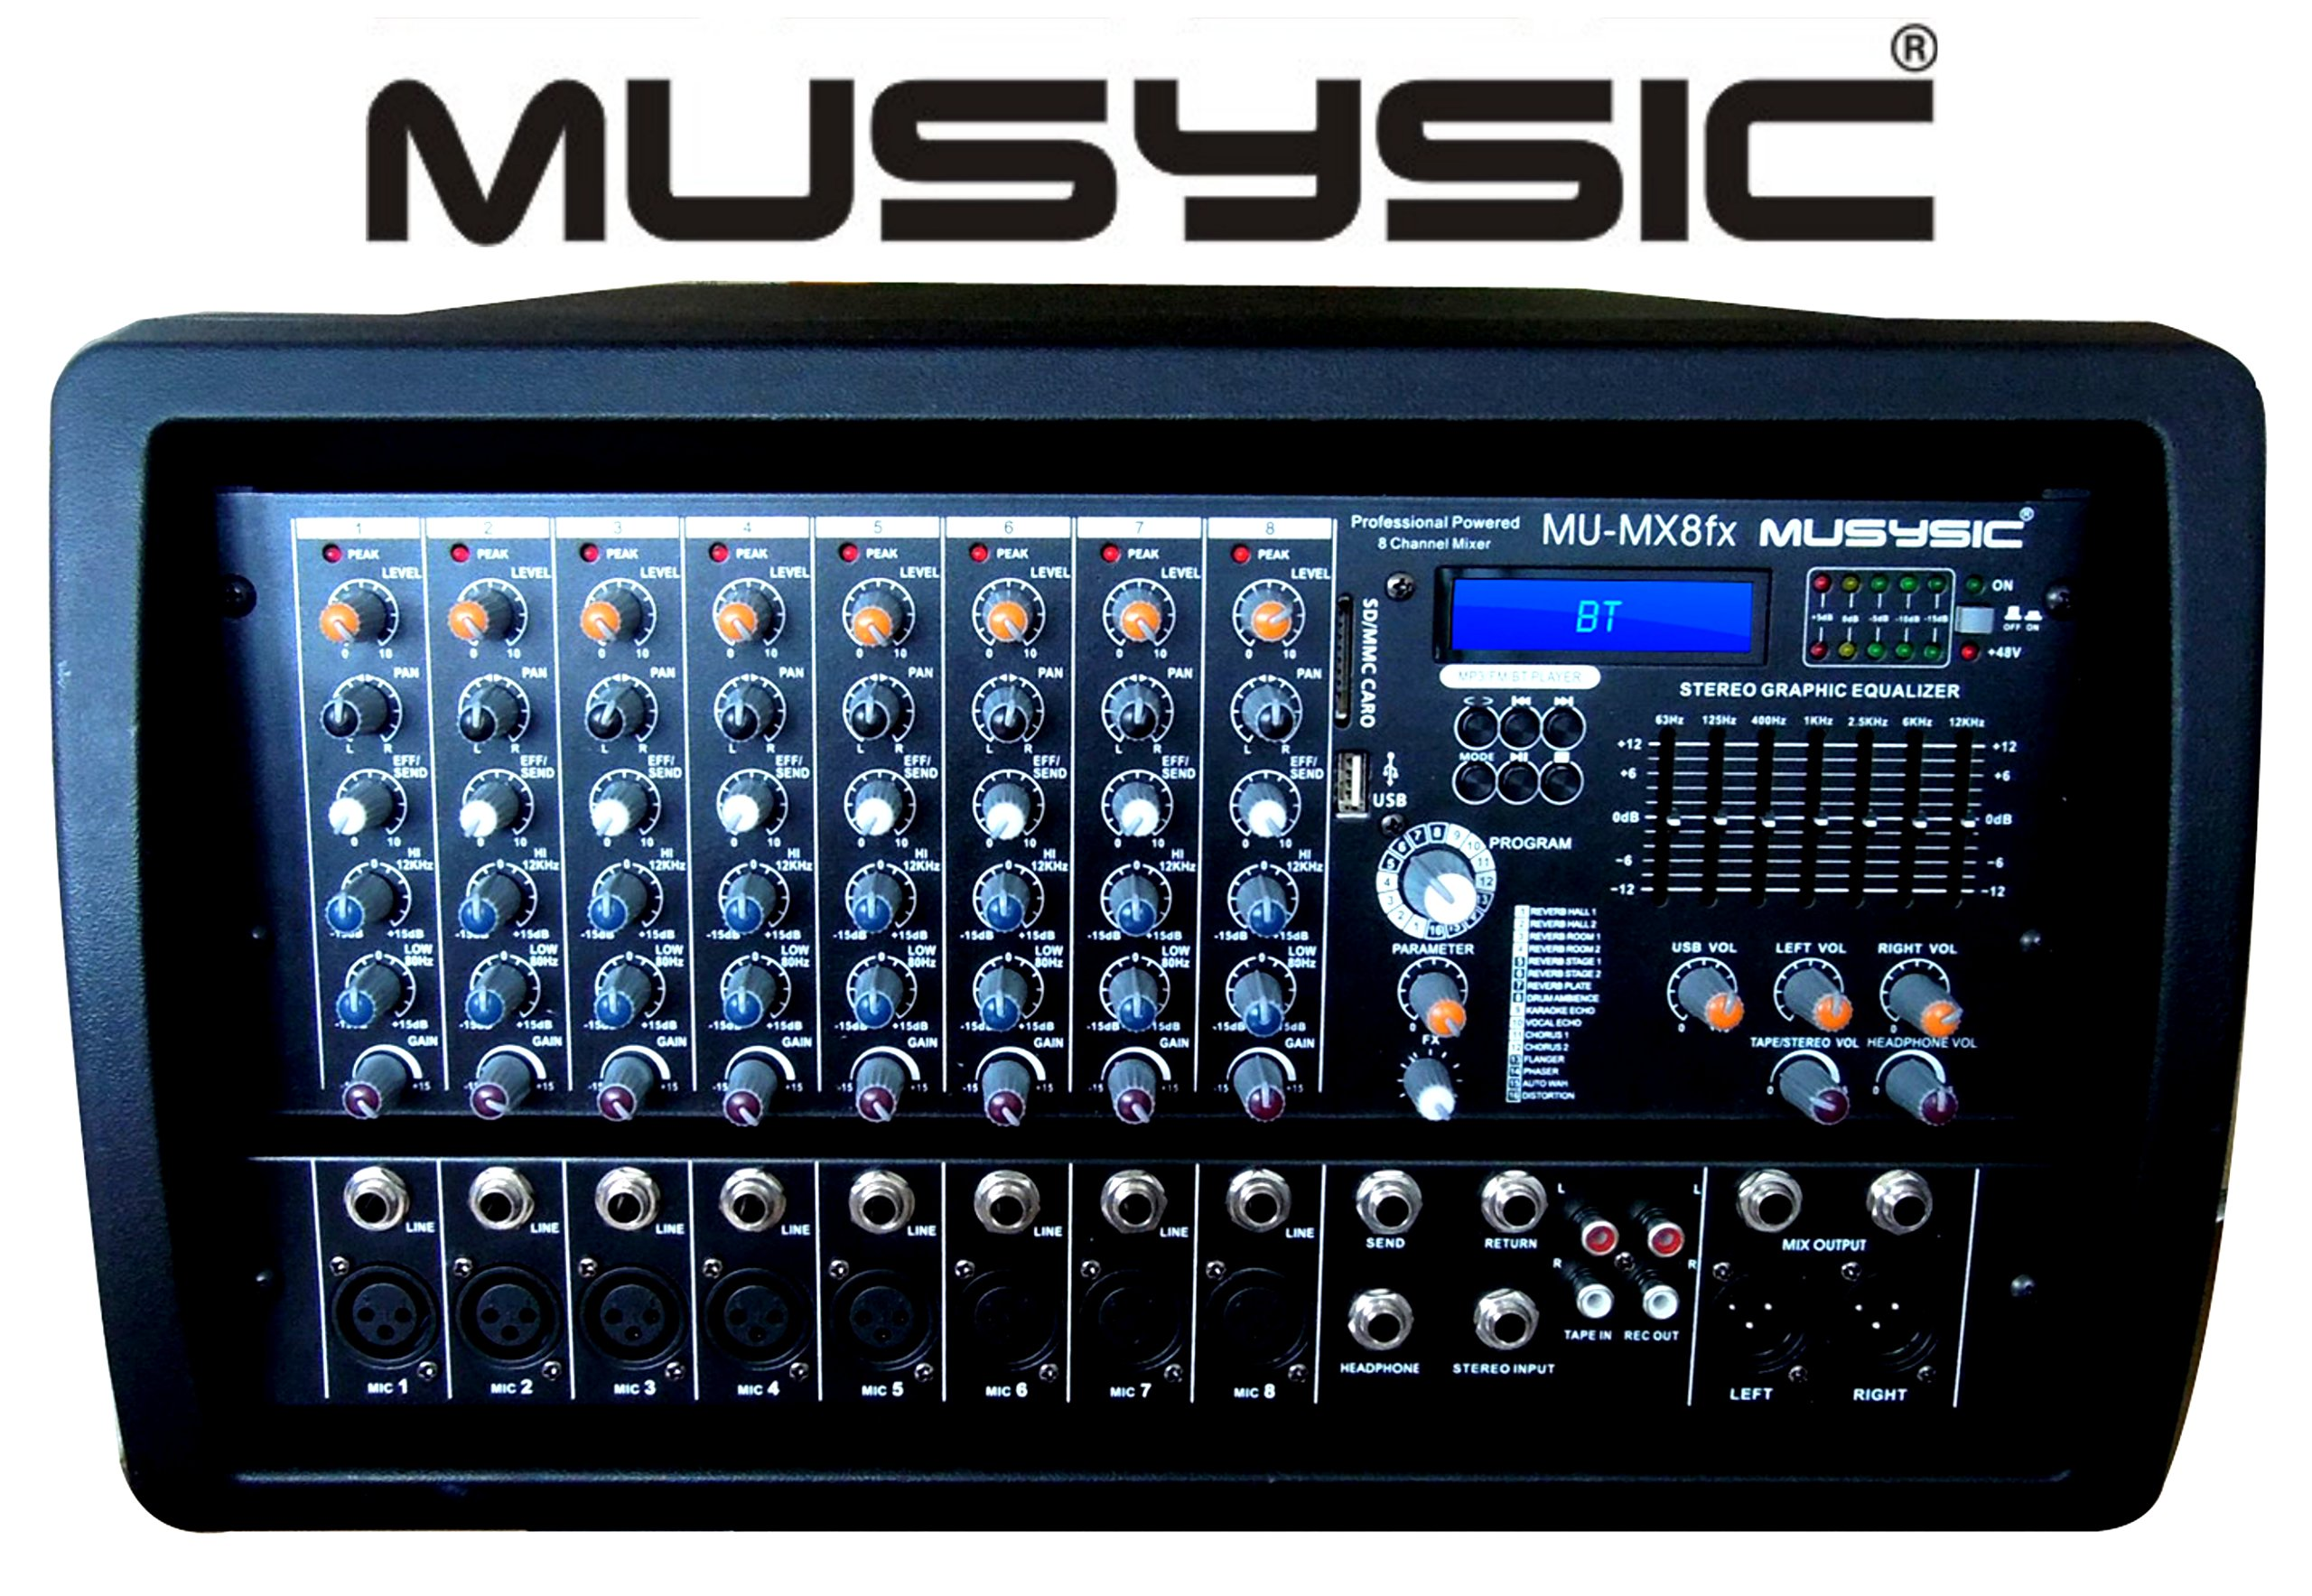 MUSYSIC PROFESSIONAL 8 CHANNEL 8000W POWER MIXER With Real DSP Sound effects and Bluetooth/USB/SD/FM Radio Function MU-MX8fx